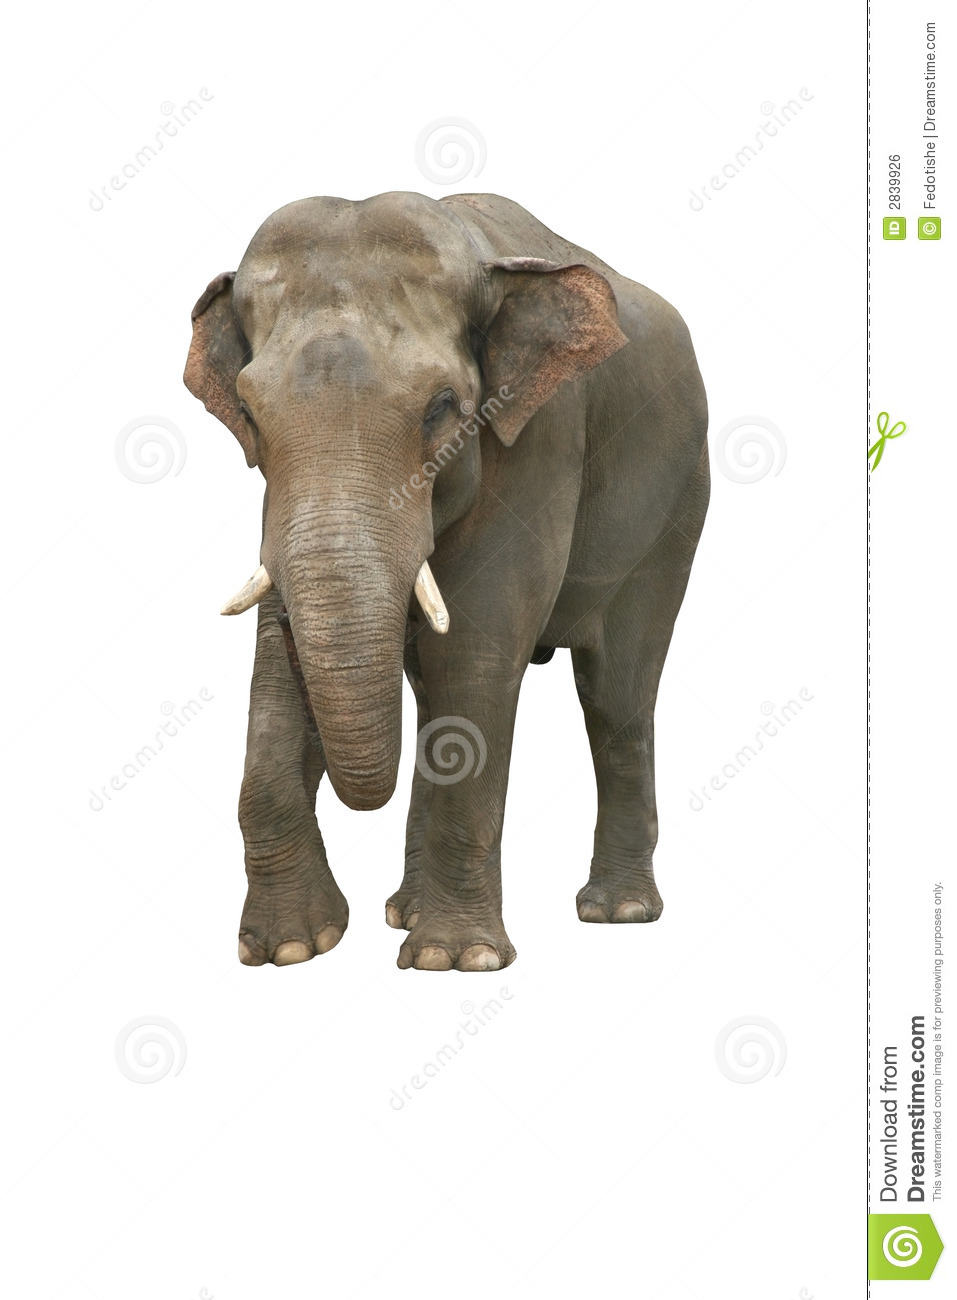 Indian Elephant Royalty Free Stock Image - Image: 2839926